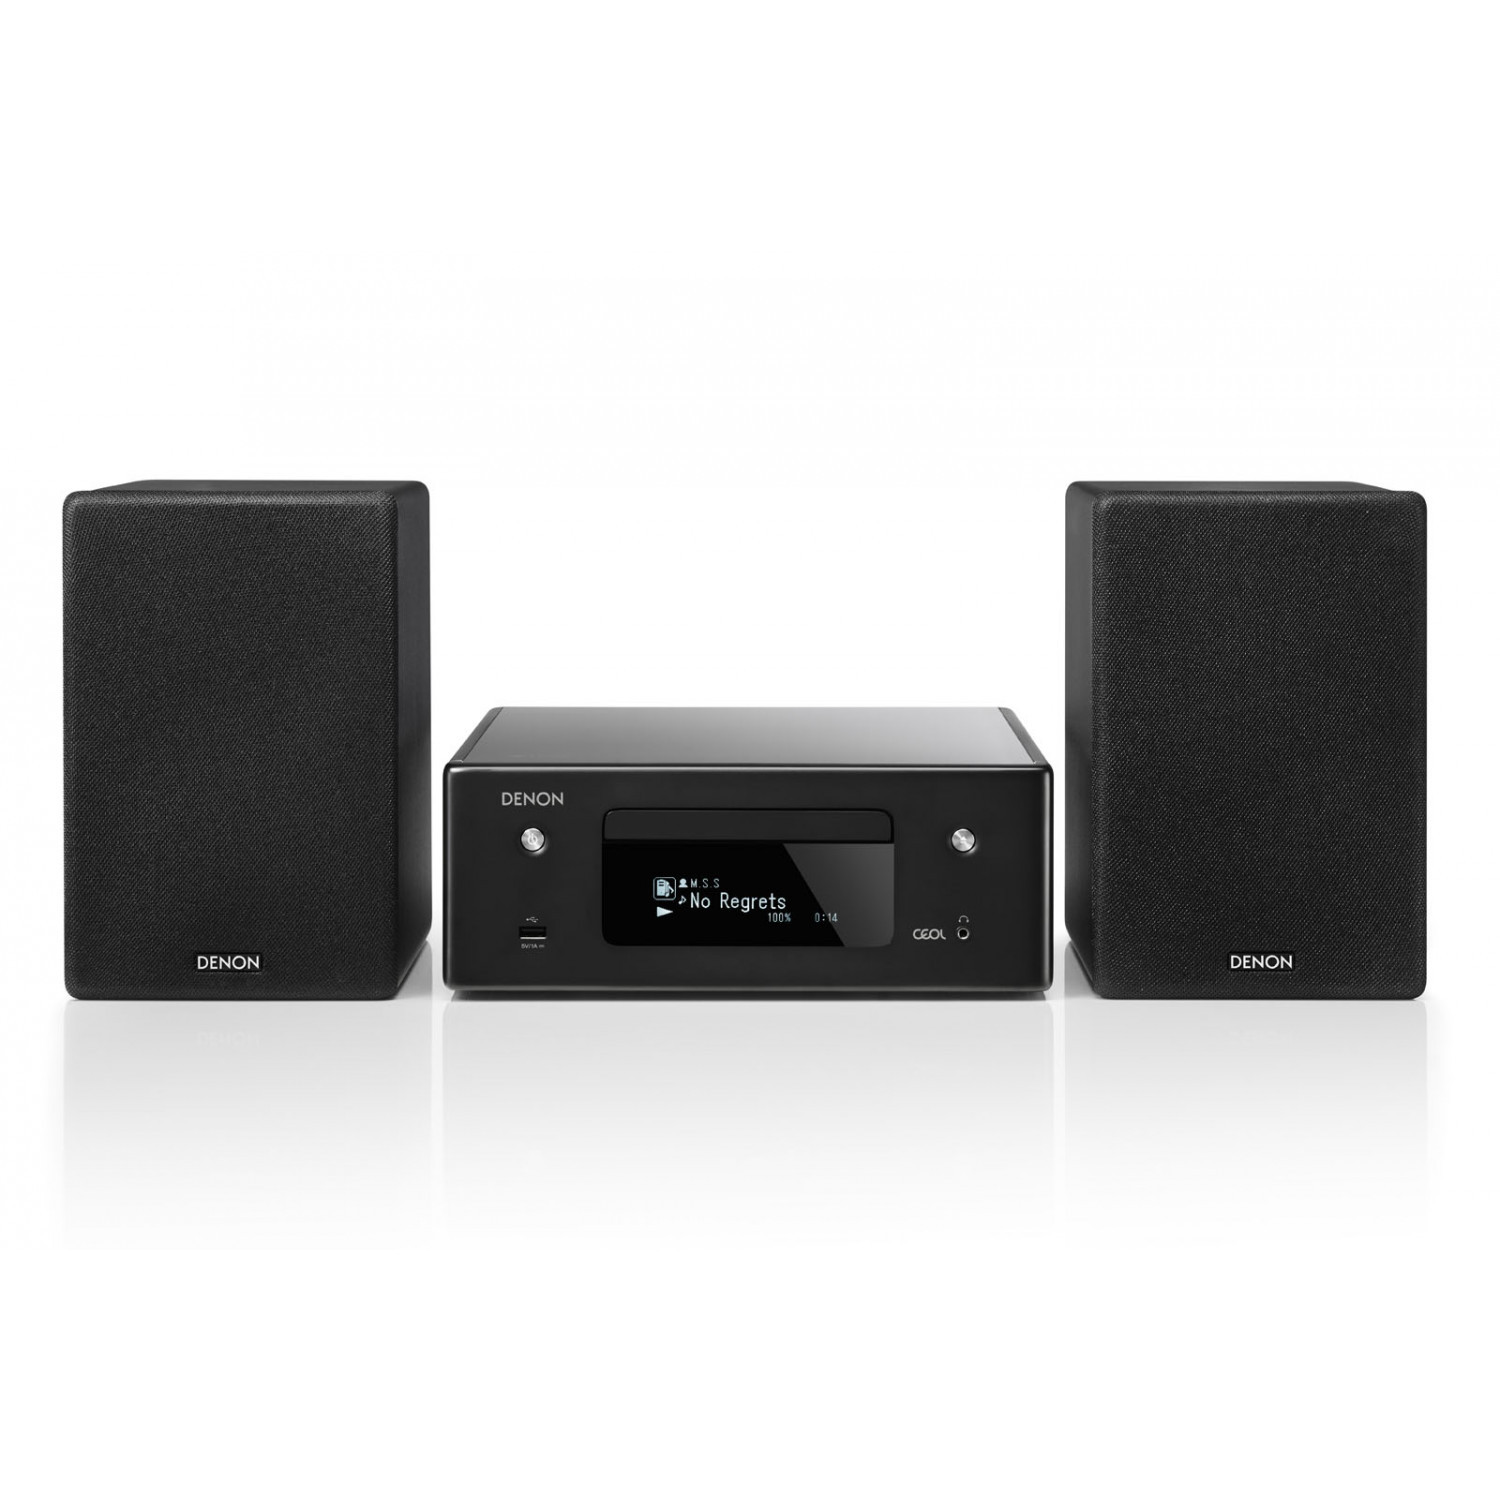 Denon CEOL N10 Compact Hi-Fi System with SC-N10 Speakers